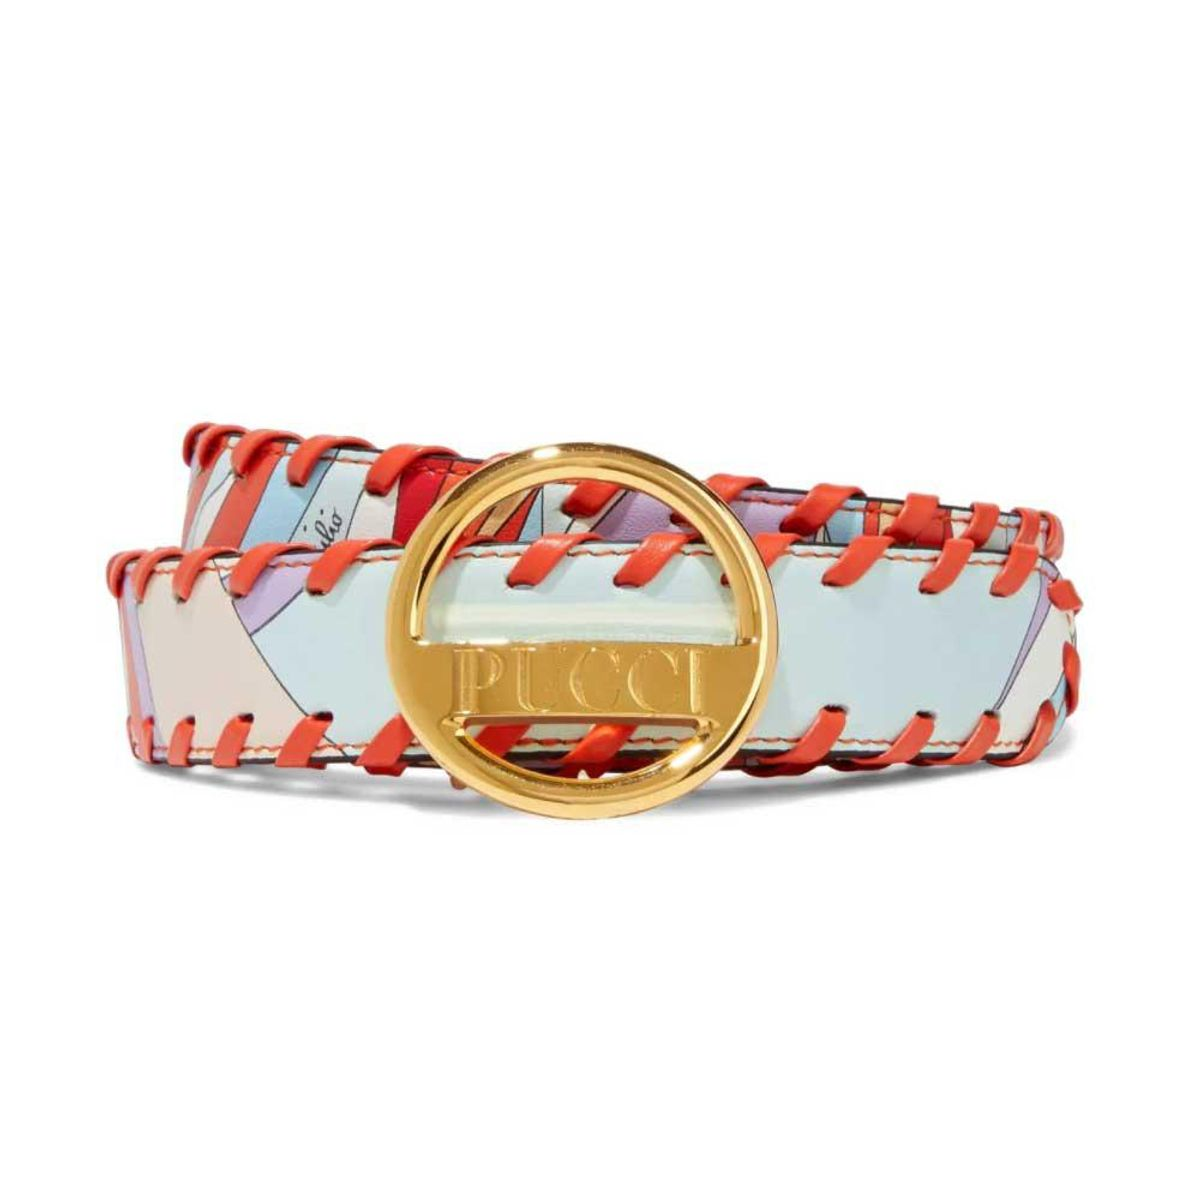 emilio pucci whipstitched printed leather belt